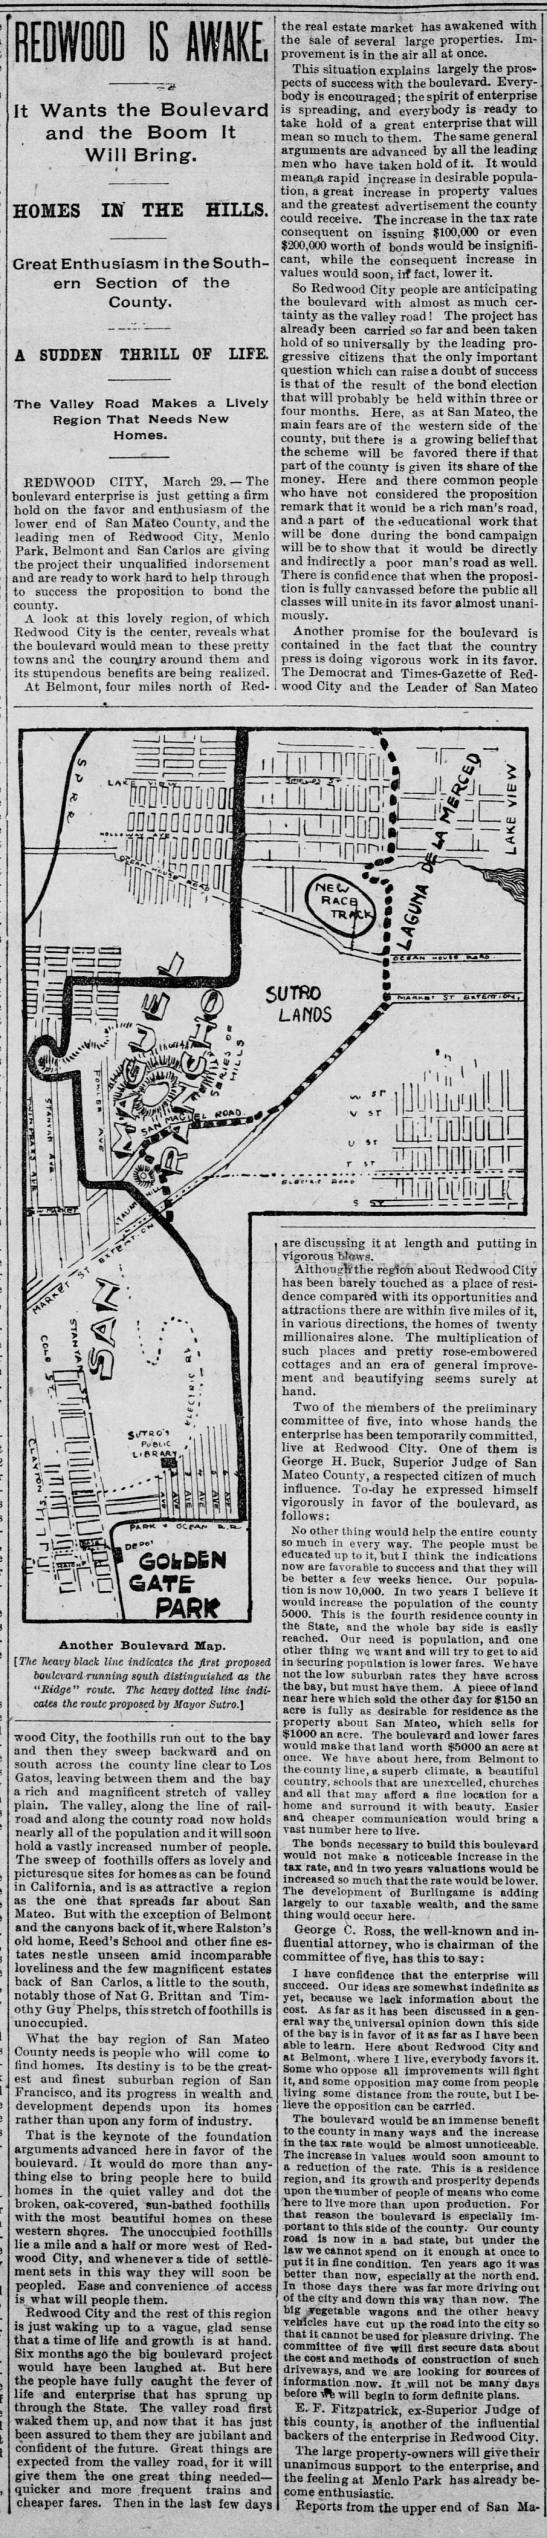 4/20/1895-Homes in the hills - REDWOOD IS AWAKE. It Wants the Boulevard and...